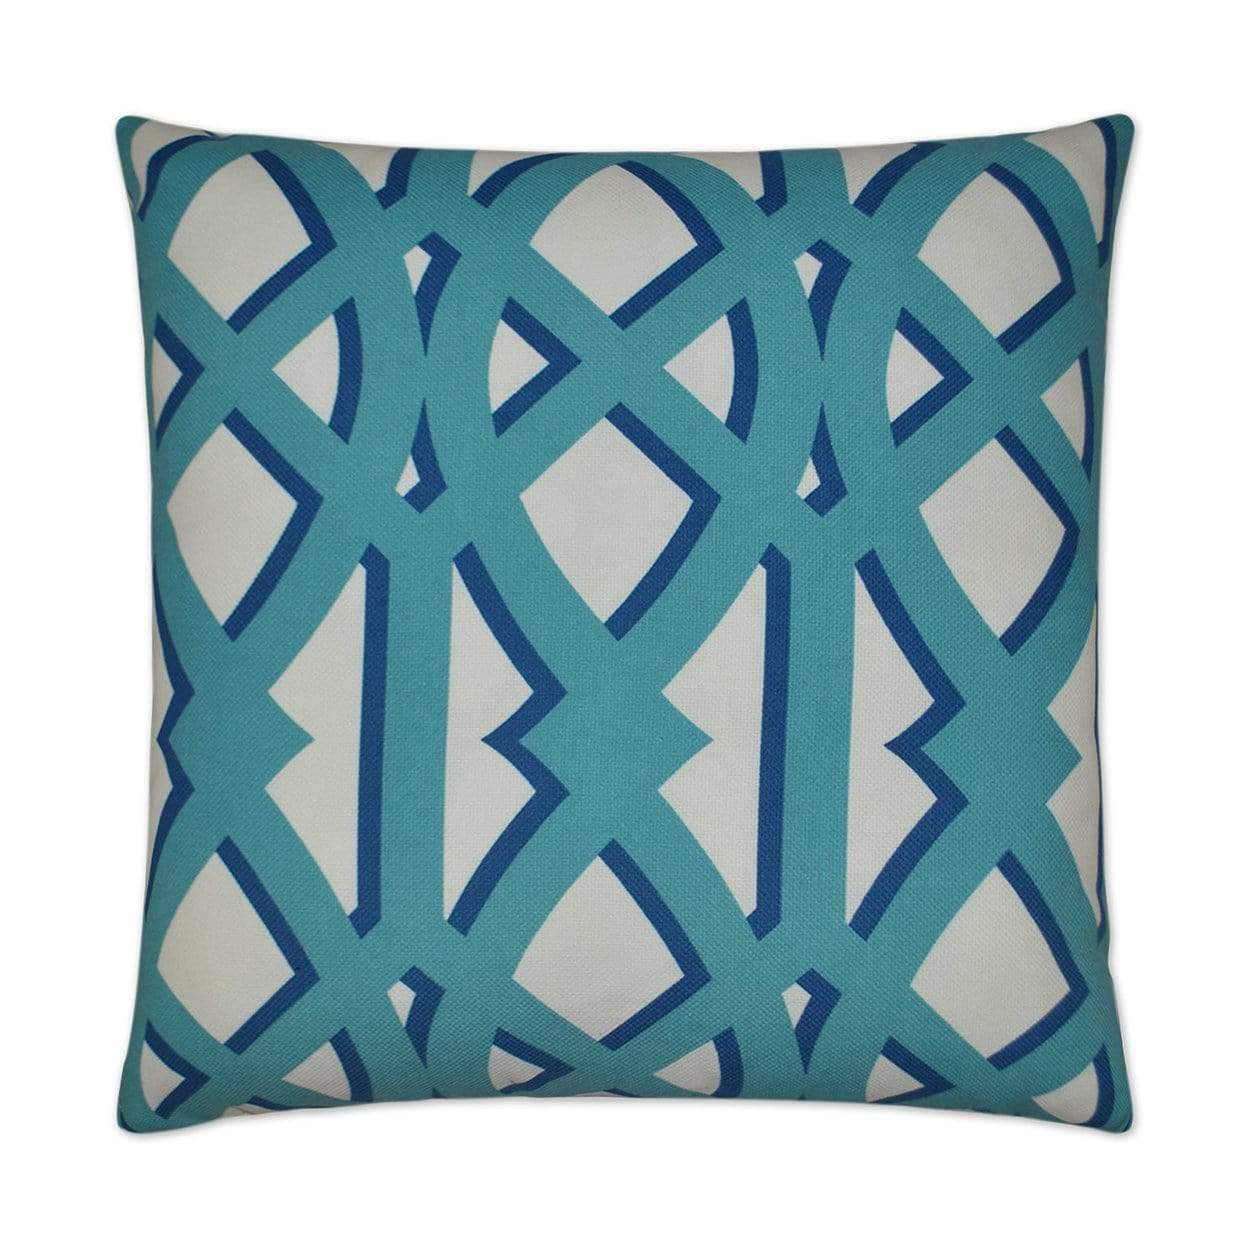 D.V. Kap D.V. Kap Elton Outdoor Pillow - Blue Turquoise OD-113-T